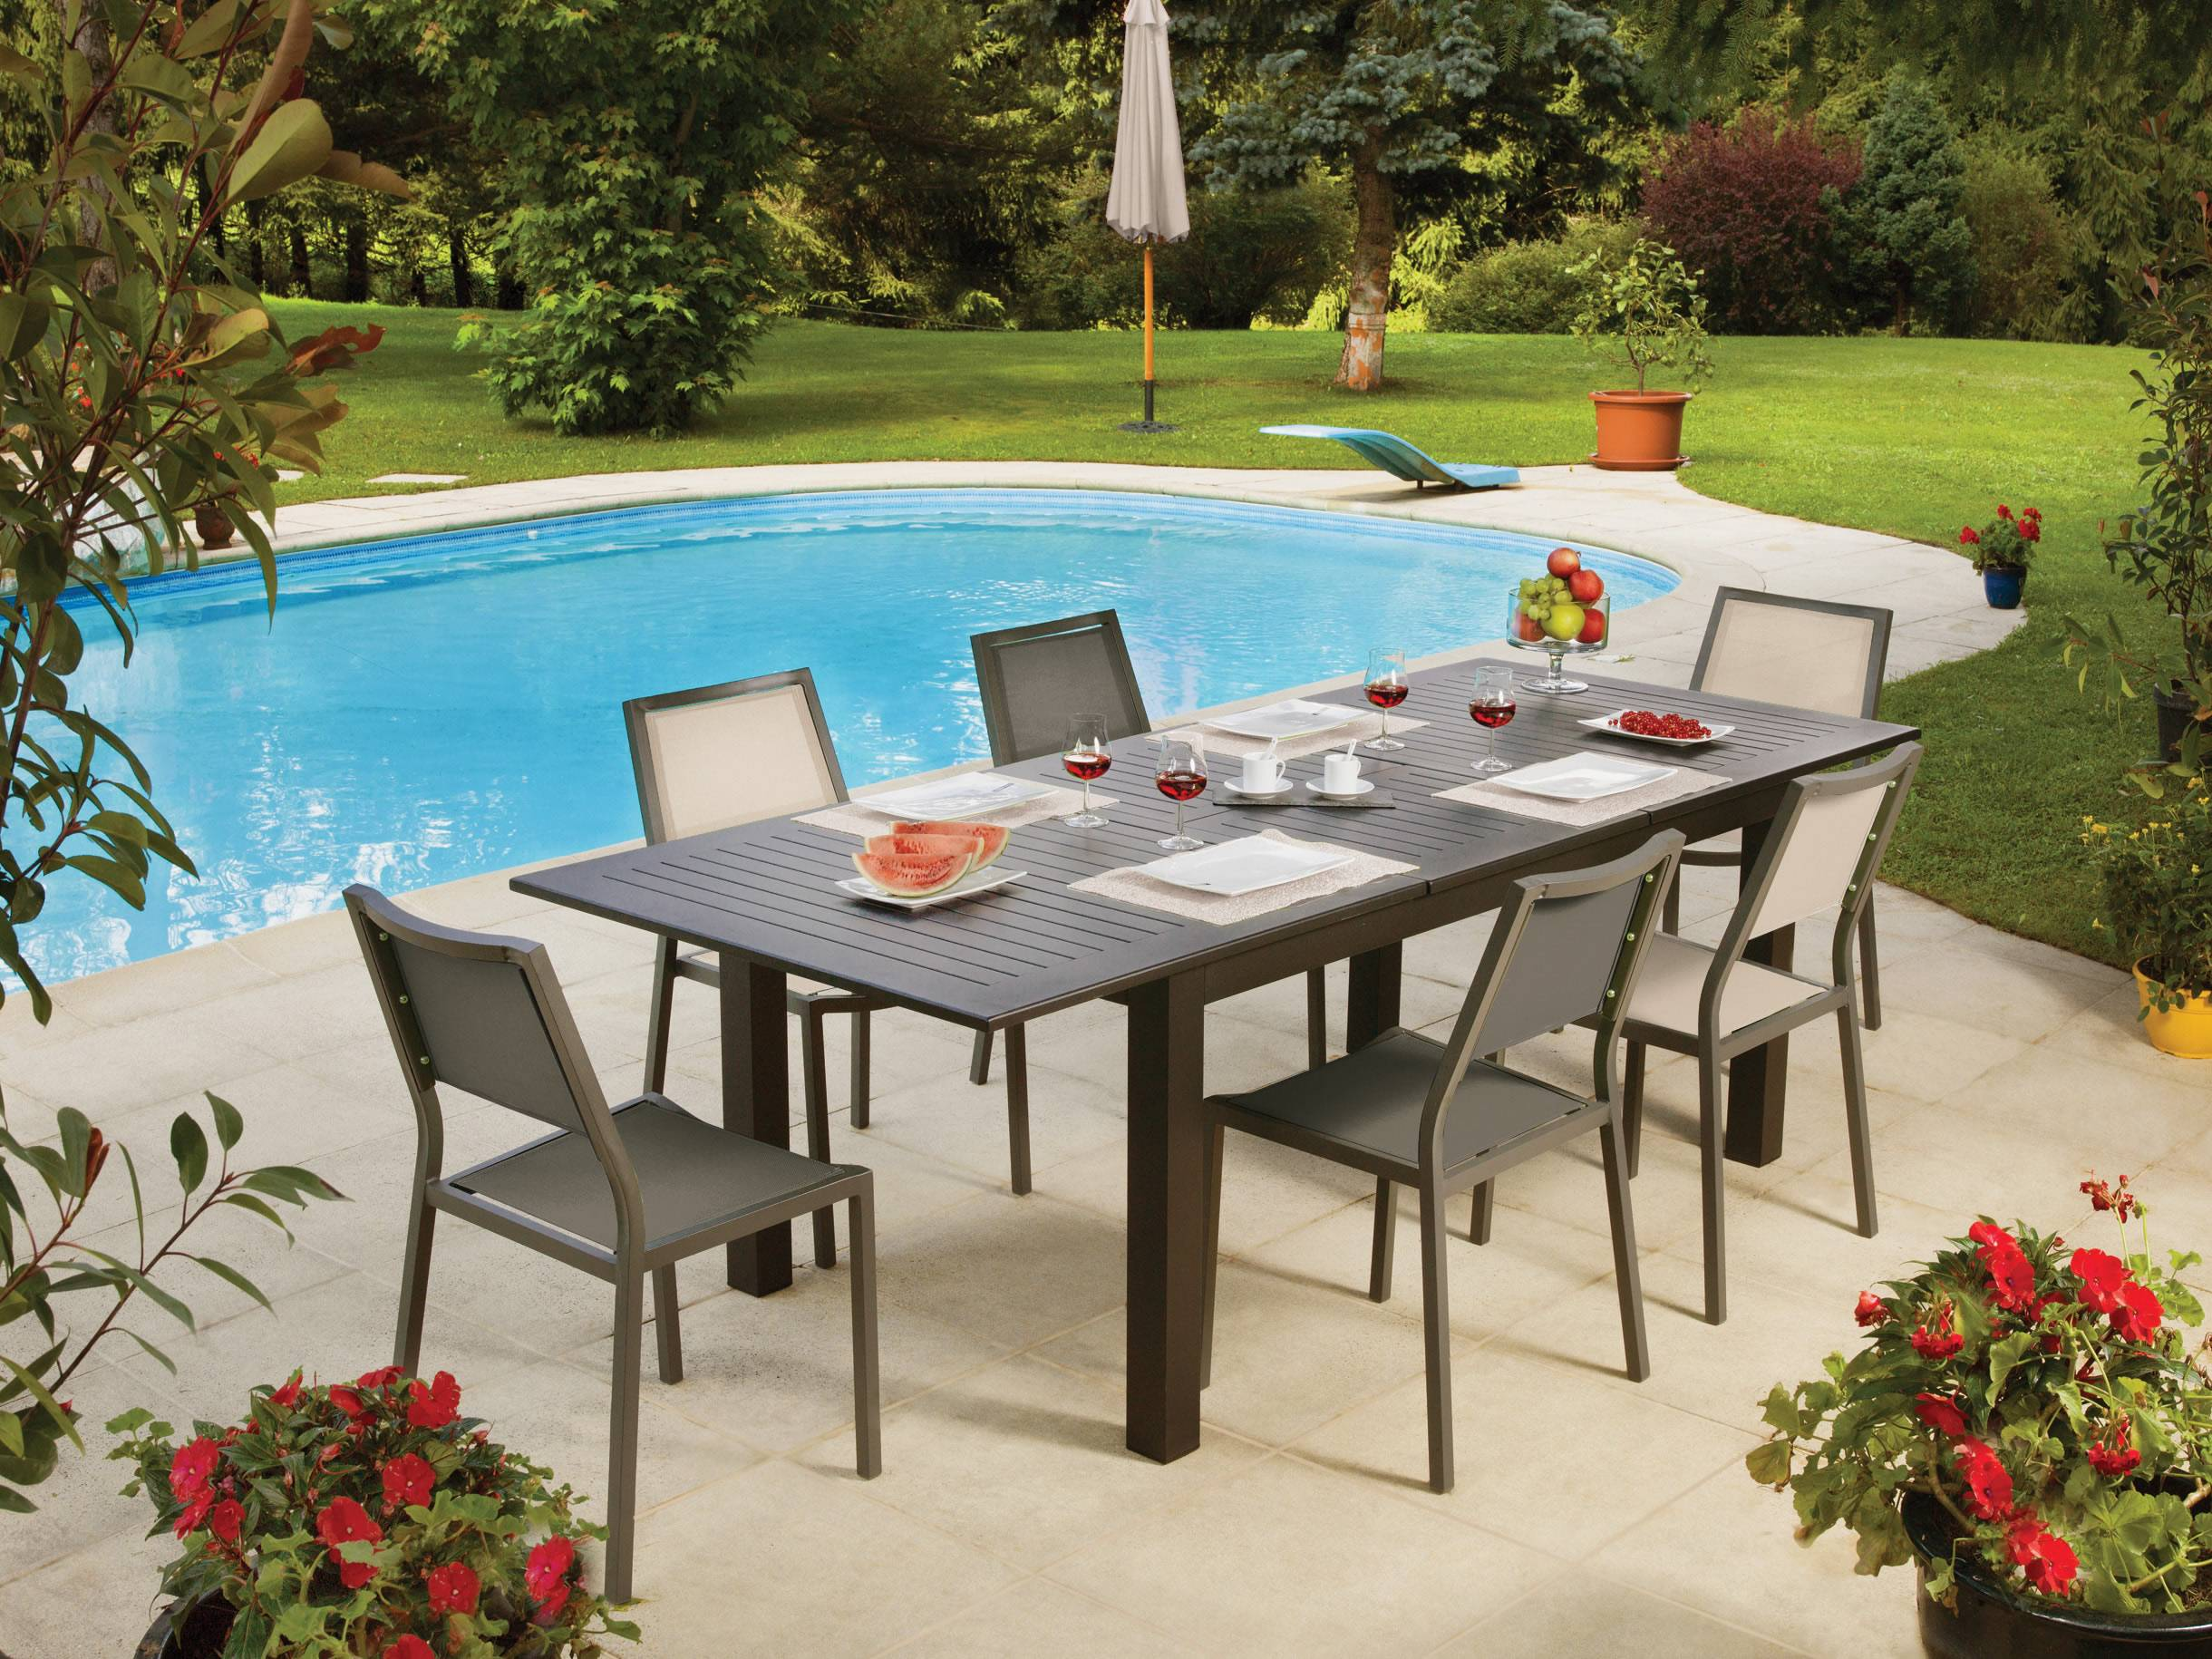 Table De Jardin Extensible Mr Bricolage - Maison Design - Yukoff.com